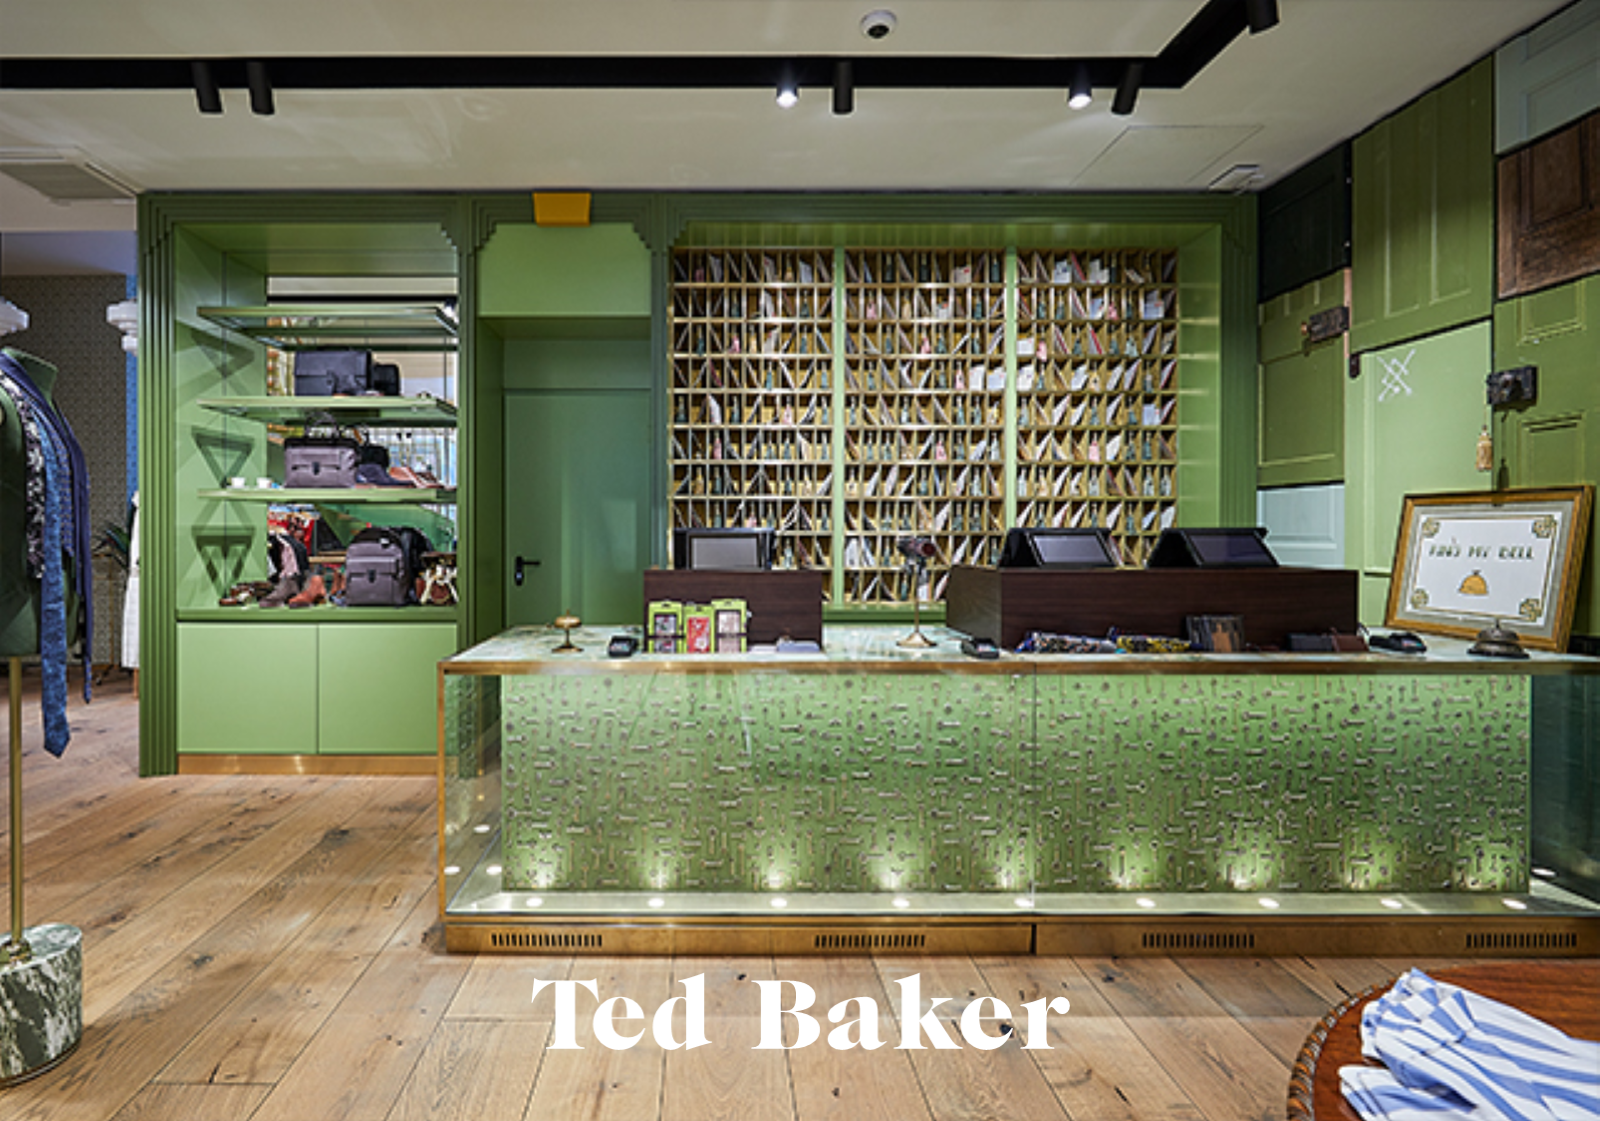 ted baker hambourg